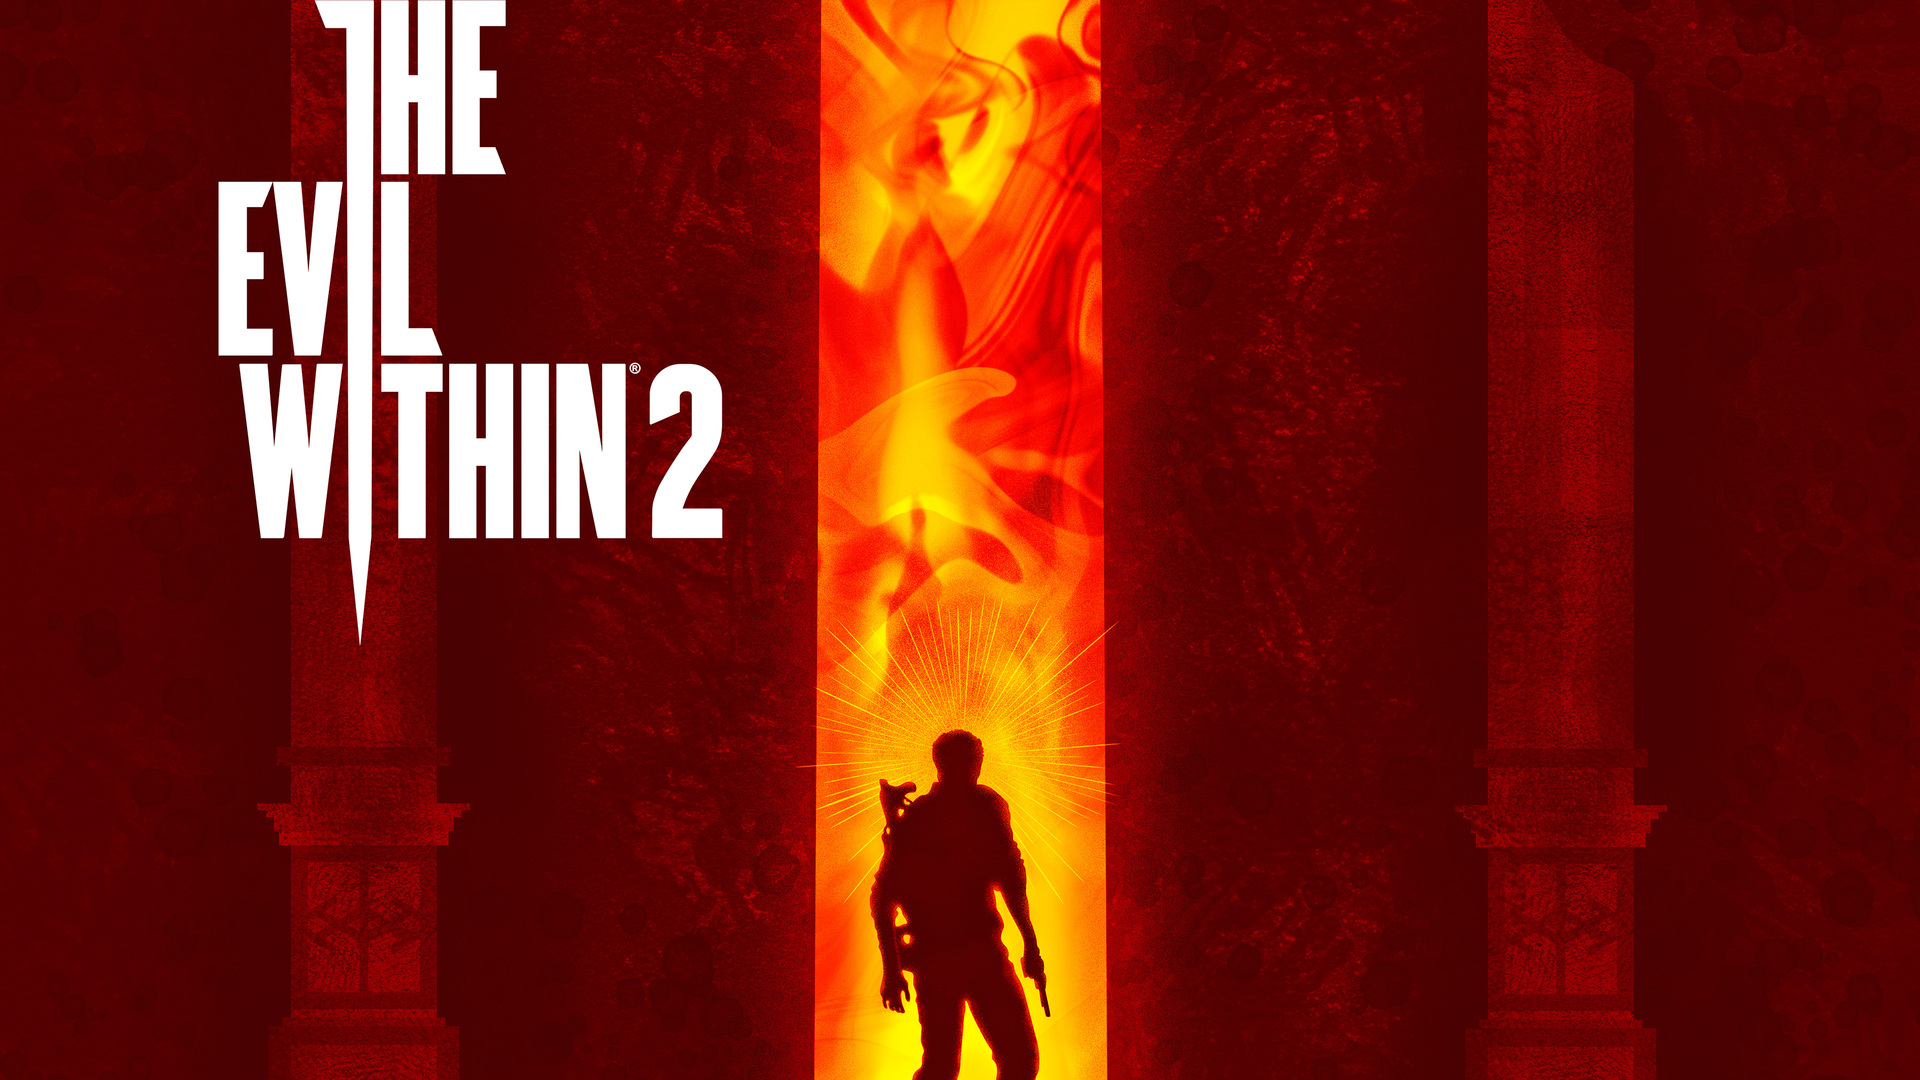 The Evil Within 2 Wallpaper 01 1920x1080: 1920x1080 The Evil Within 2 4k Laptop Full HD 1080P HD 4k